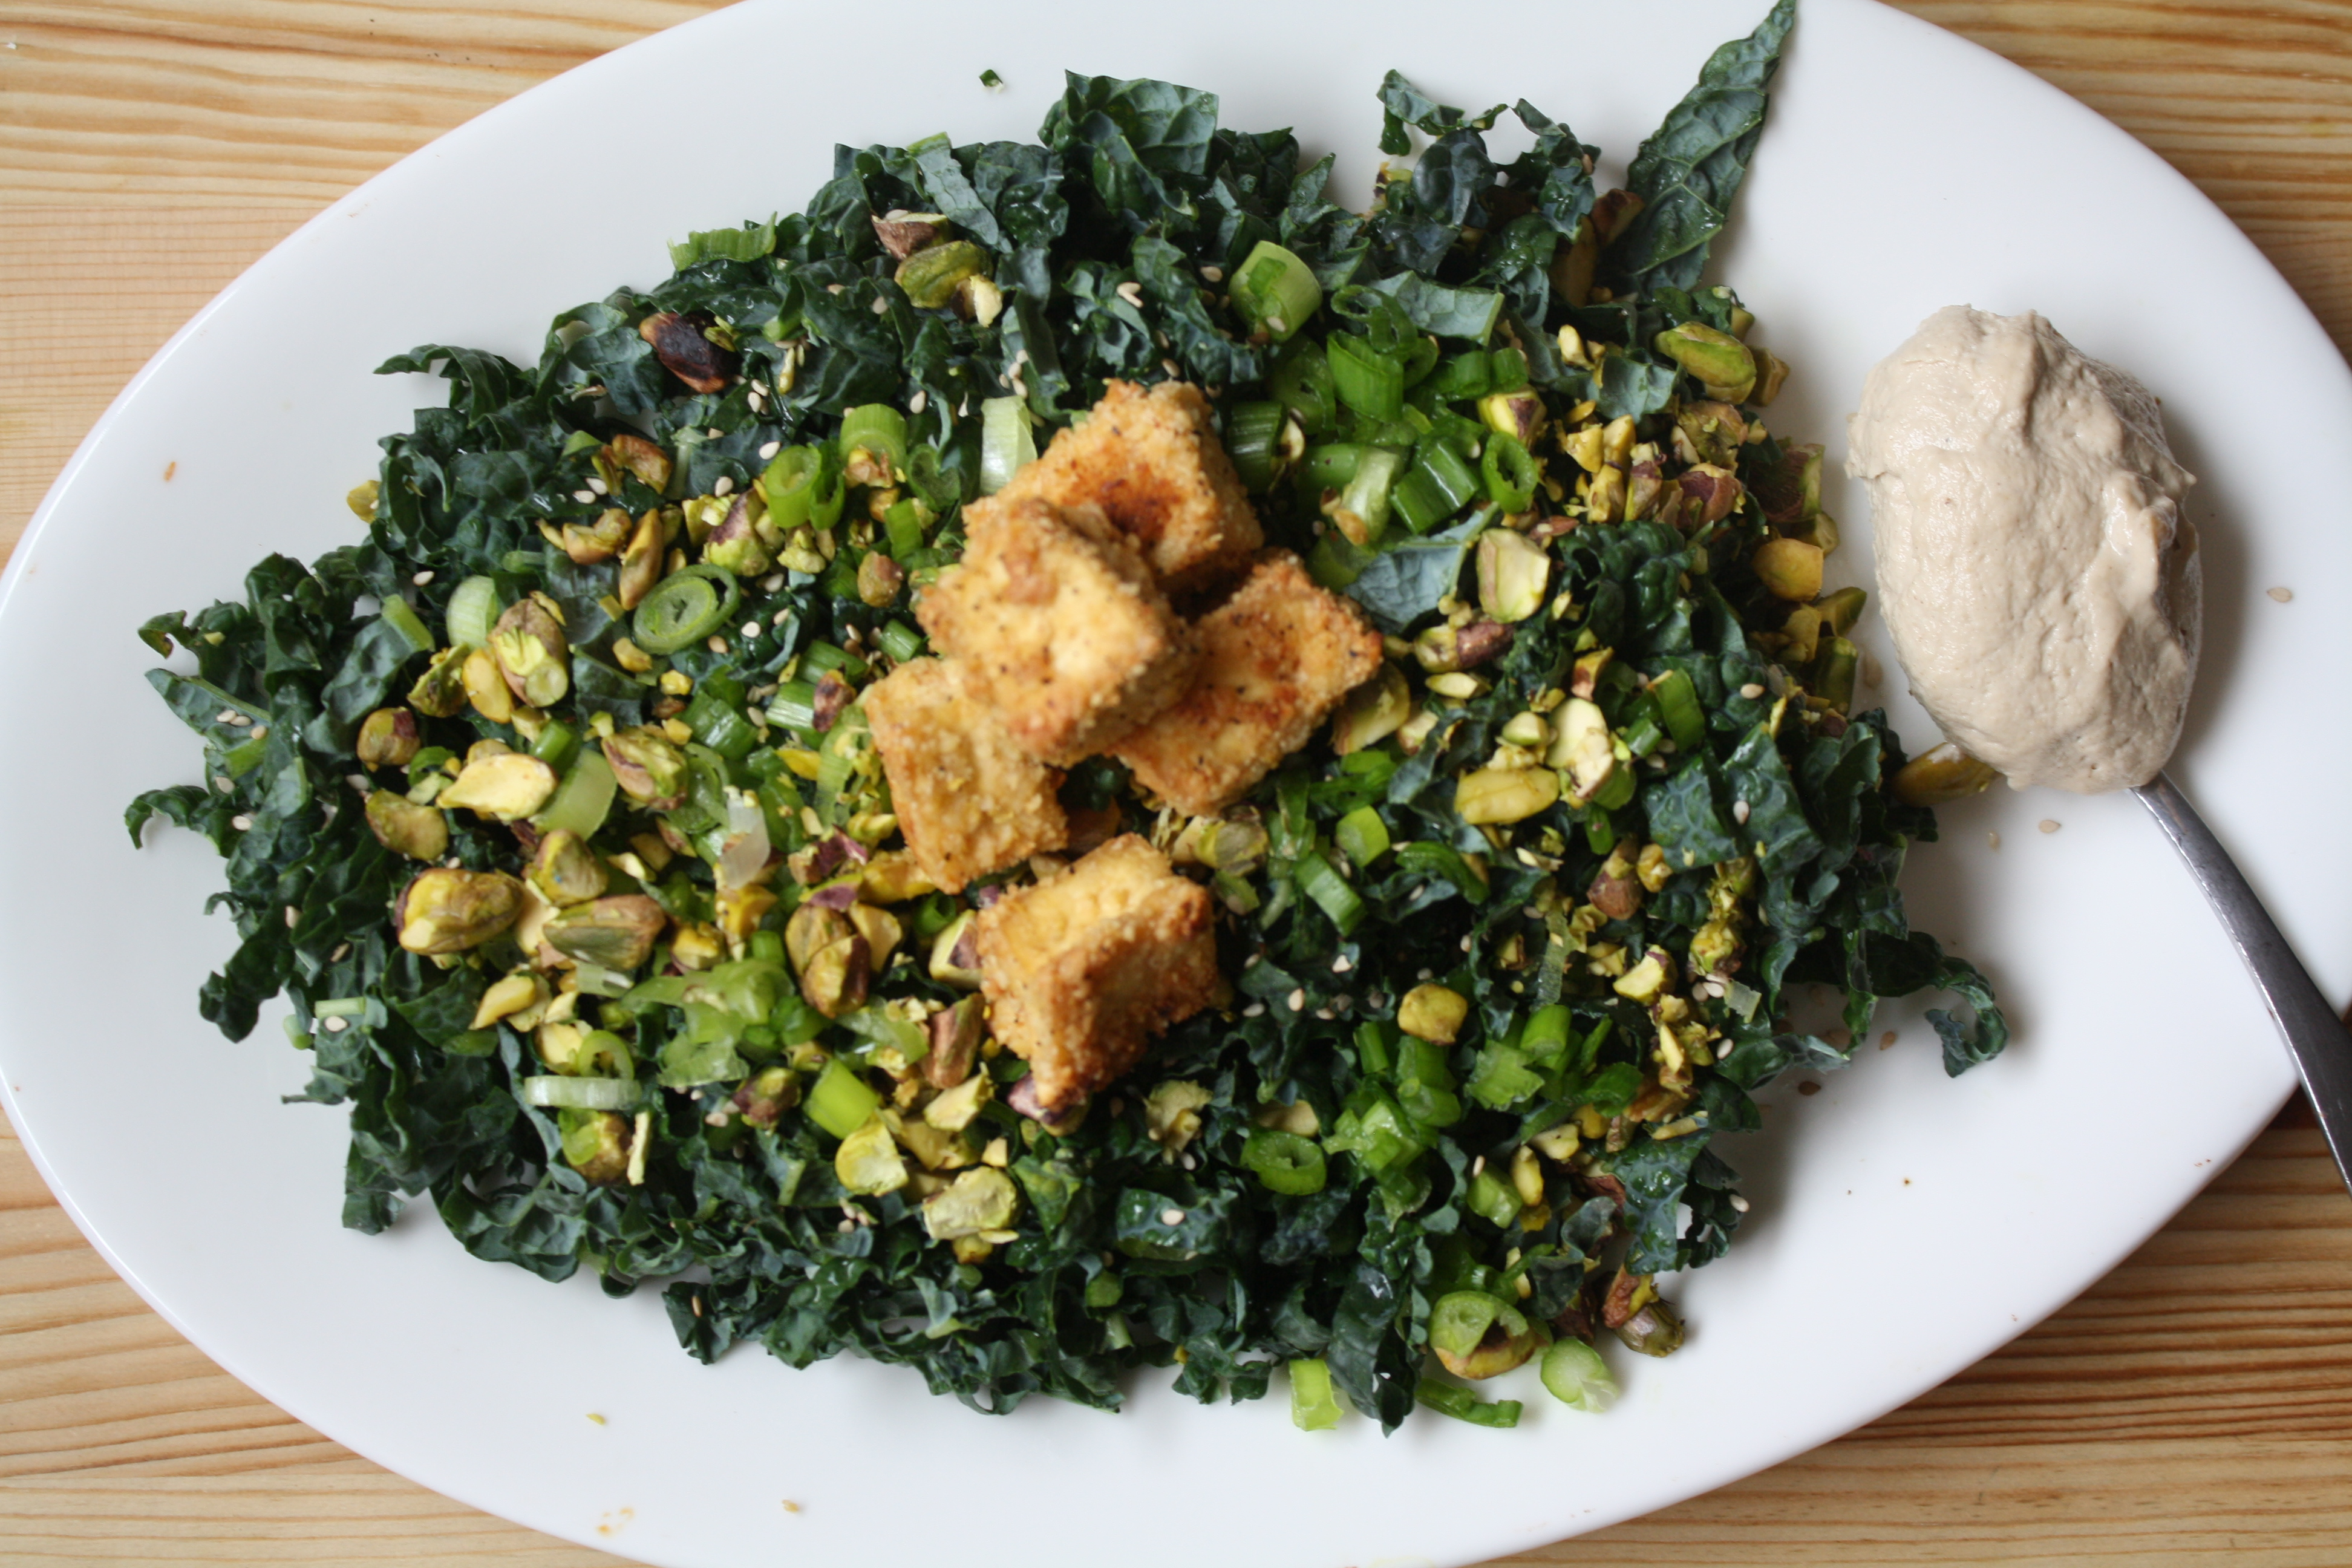 ... Kale Salad with Pistachios, Tahini Miso Dressing & Almond Crusted Tofu